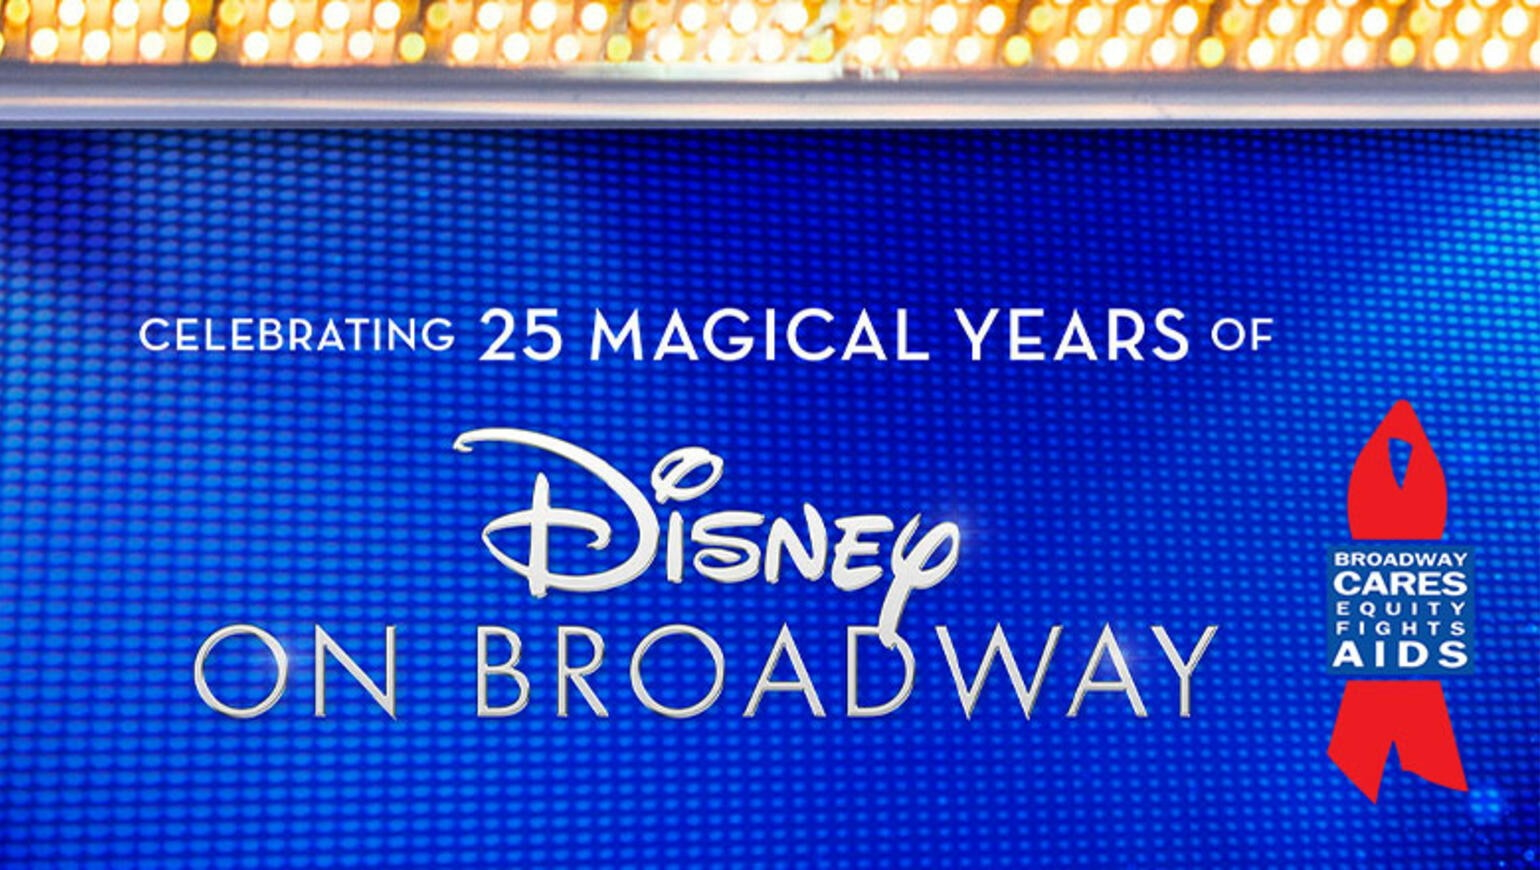 Celebrating 25 Years of Disney on Broadway